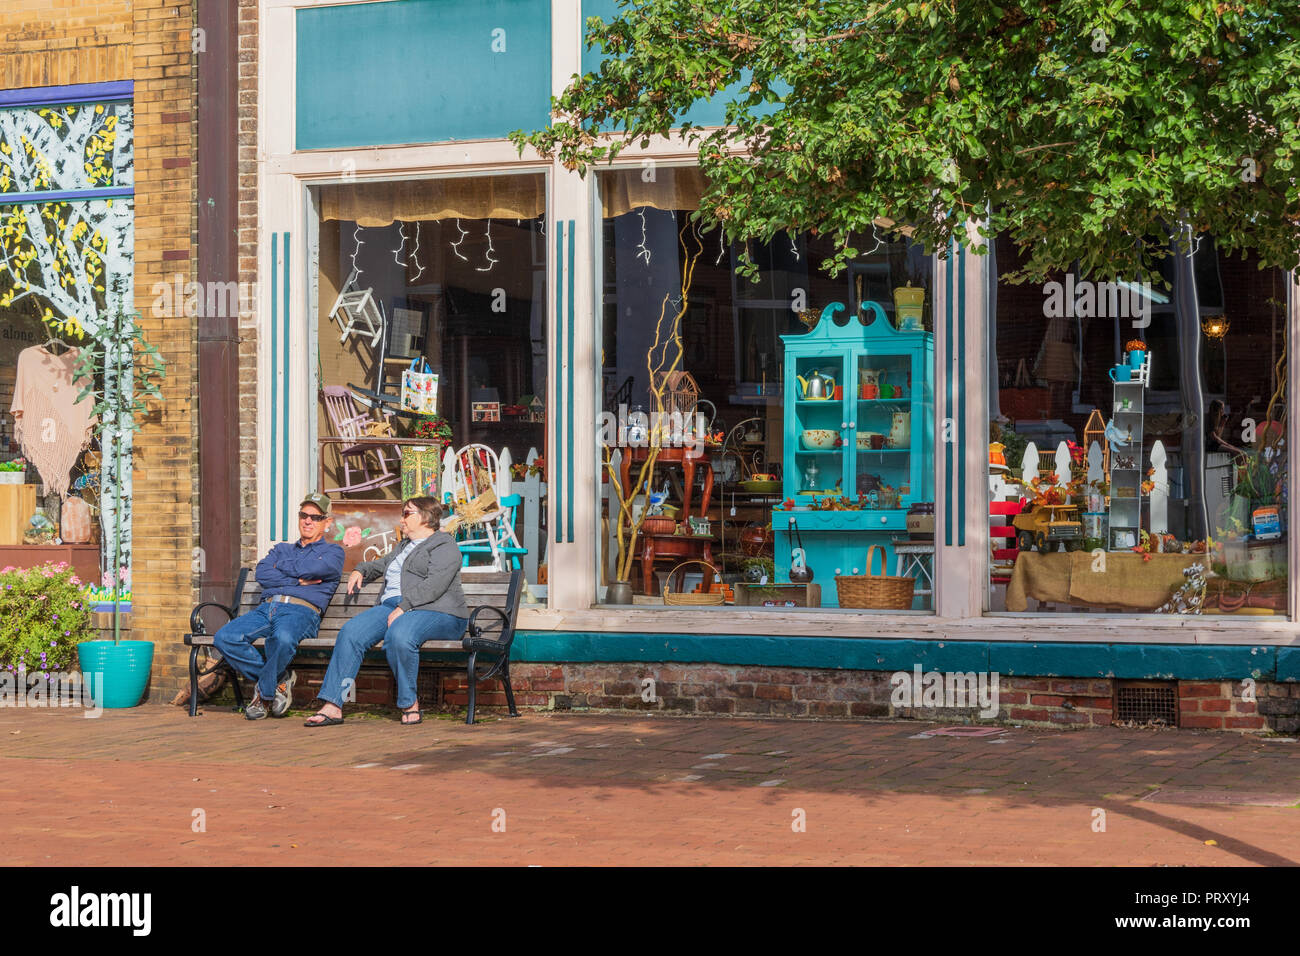 JONESBOROUGH, TN, USA-9/29/18: A man and woman rest and talk on a  bench in historic Jonesborough, in front of colorful stores. Stock Photo